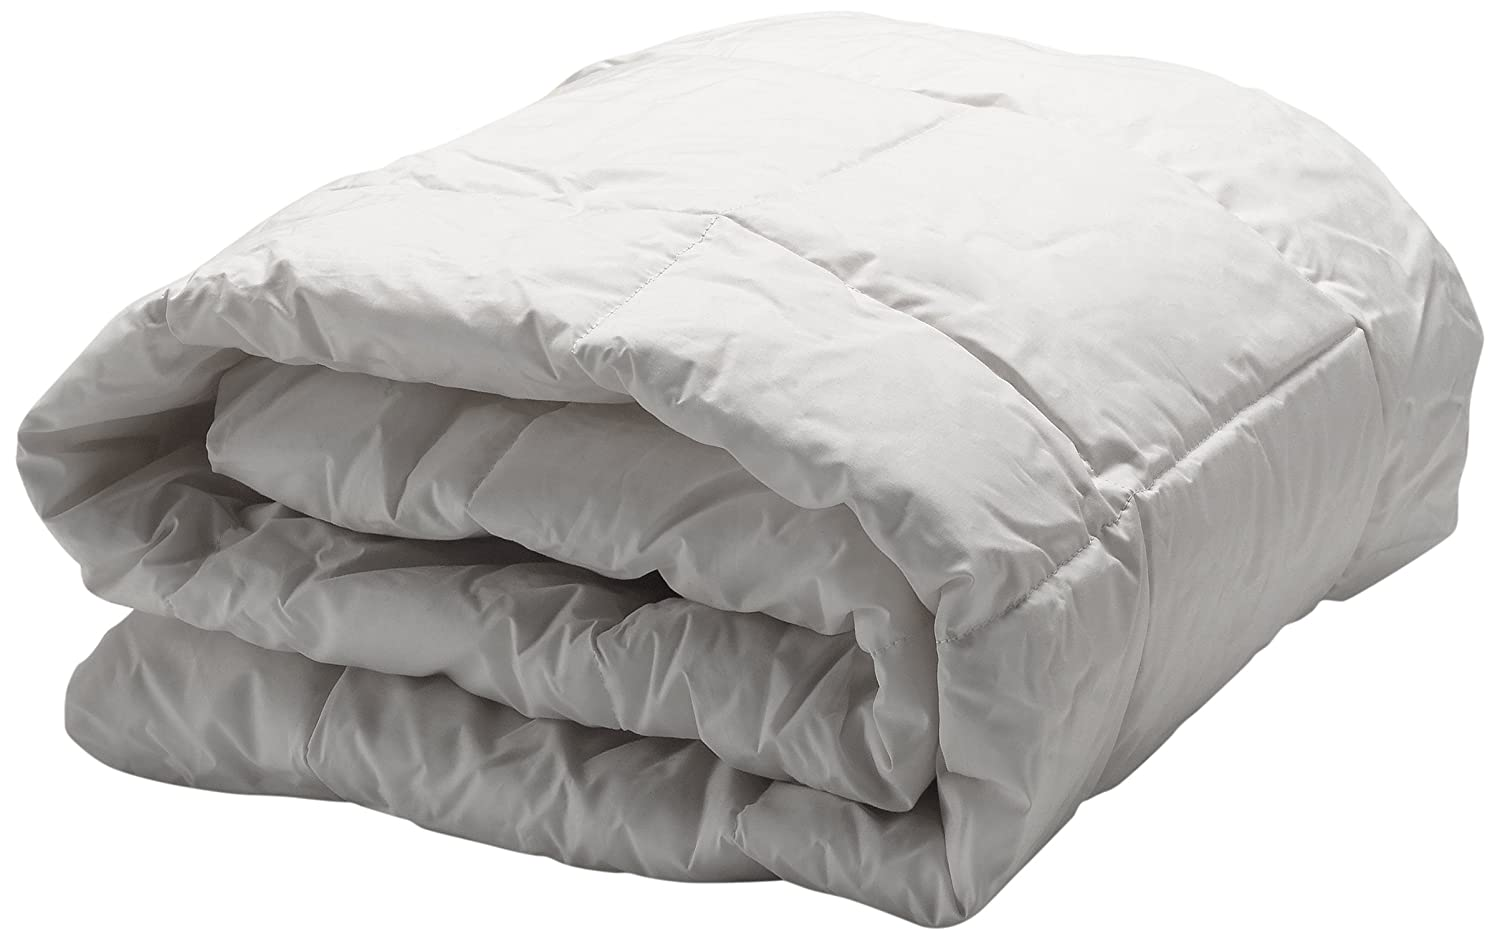 AllerEase Hot Water Washable Allergy Protection Comforter airborne pollen allergy